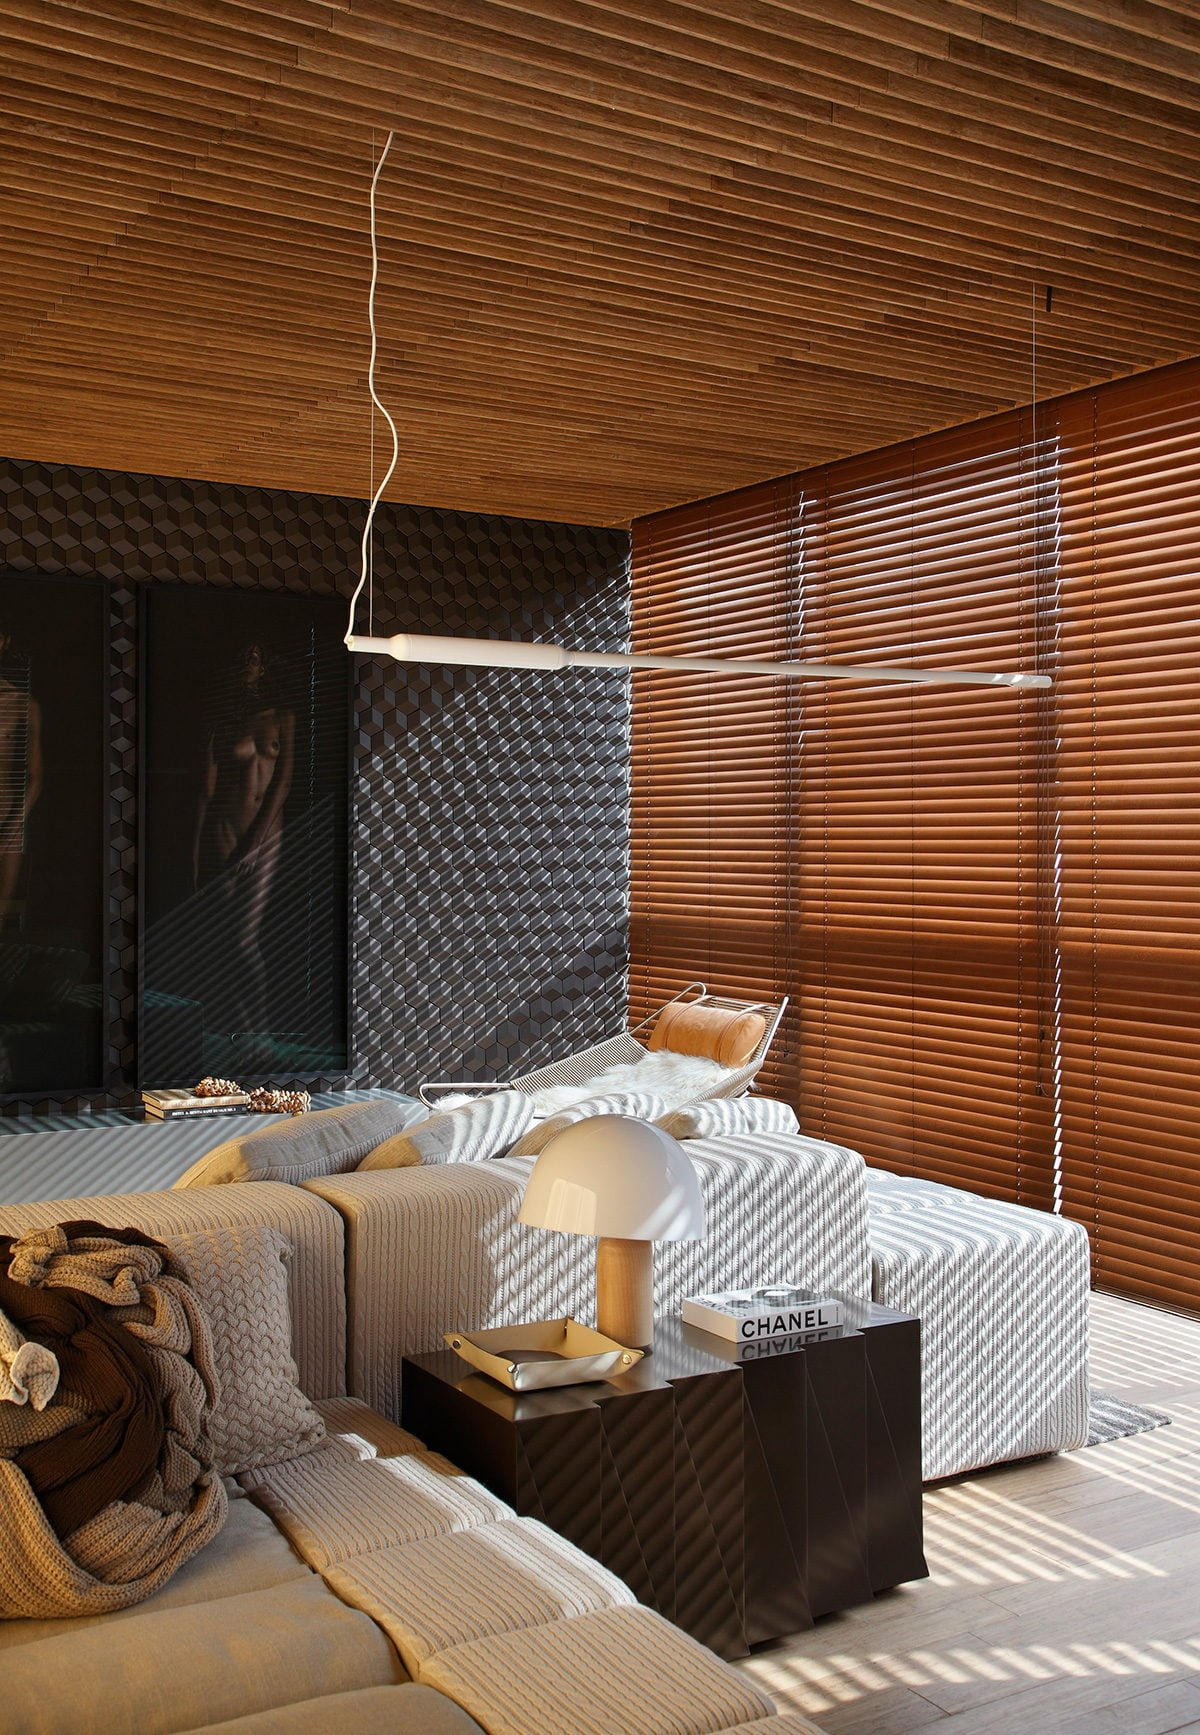 3Hotel-Black-by-Studio-Guilherme-Torres-at-MostraBlack-2013-Yellowtrace-04